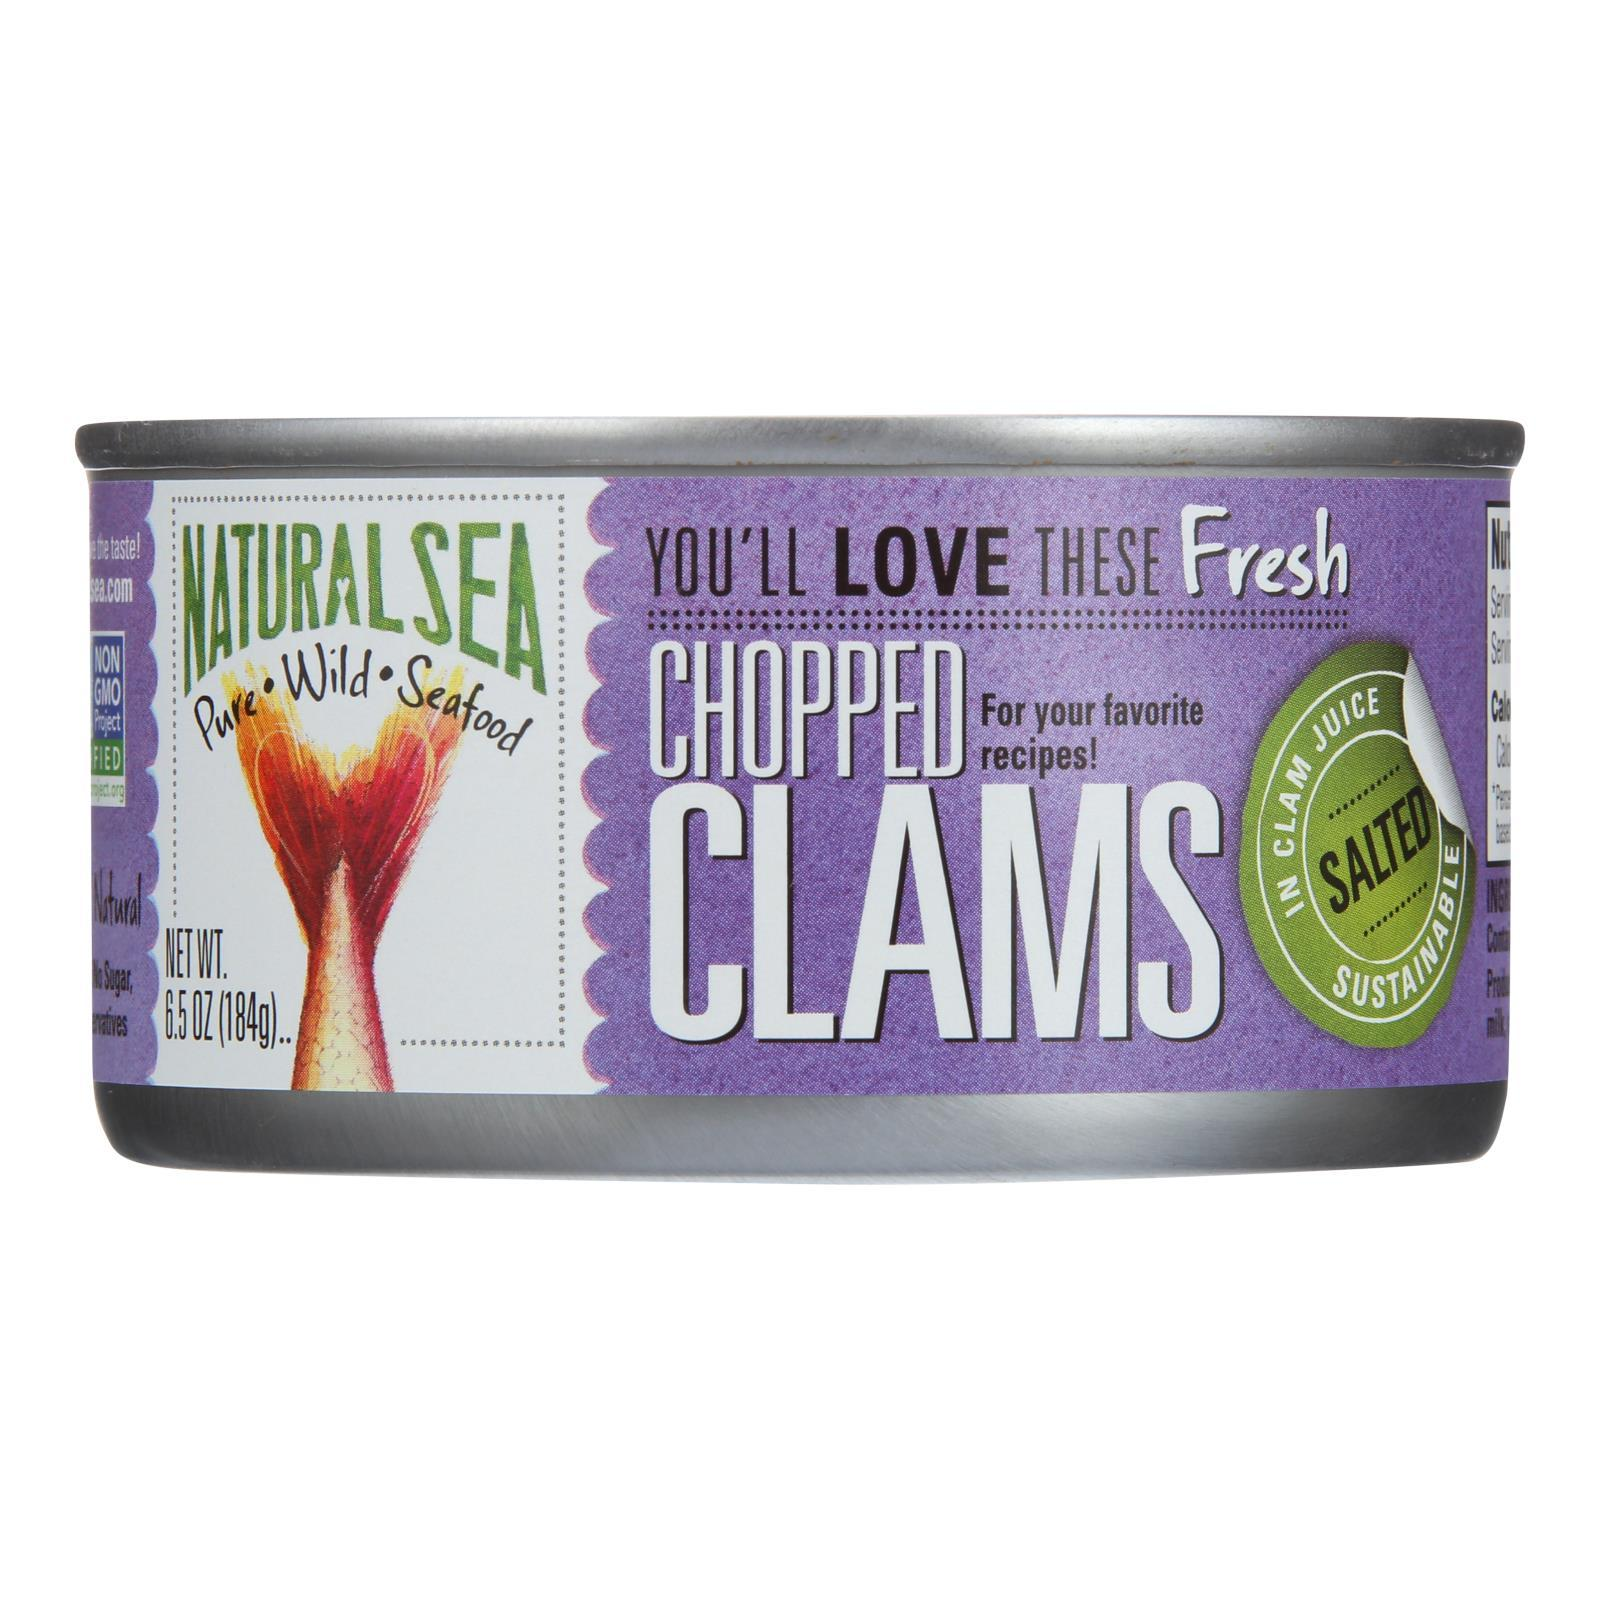 Natural Sea Wild Atlantic Surf Clams, Chopped - Case Of 12 - 6.5 Oz - BeeGreen